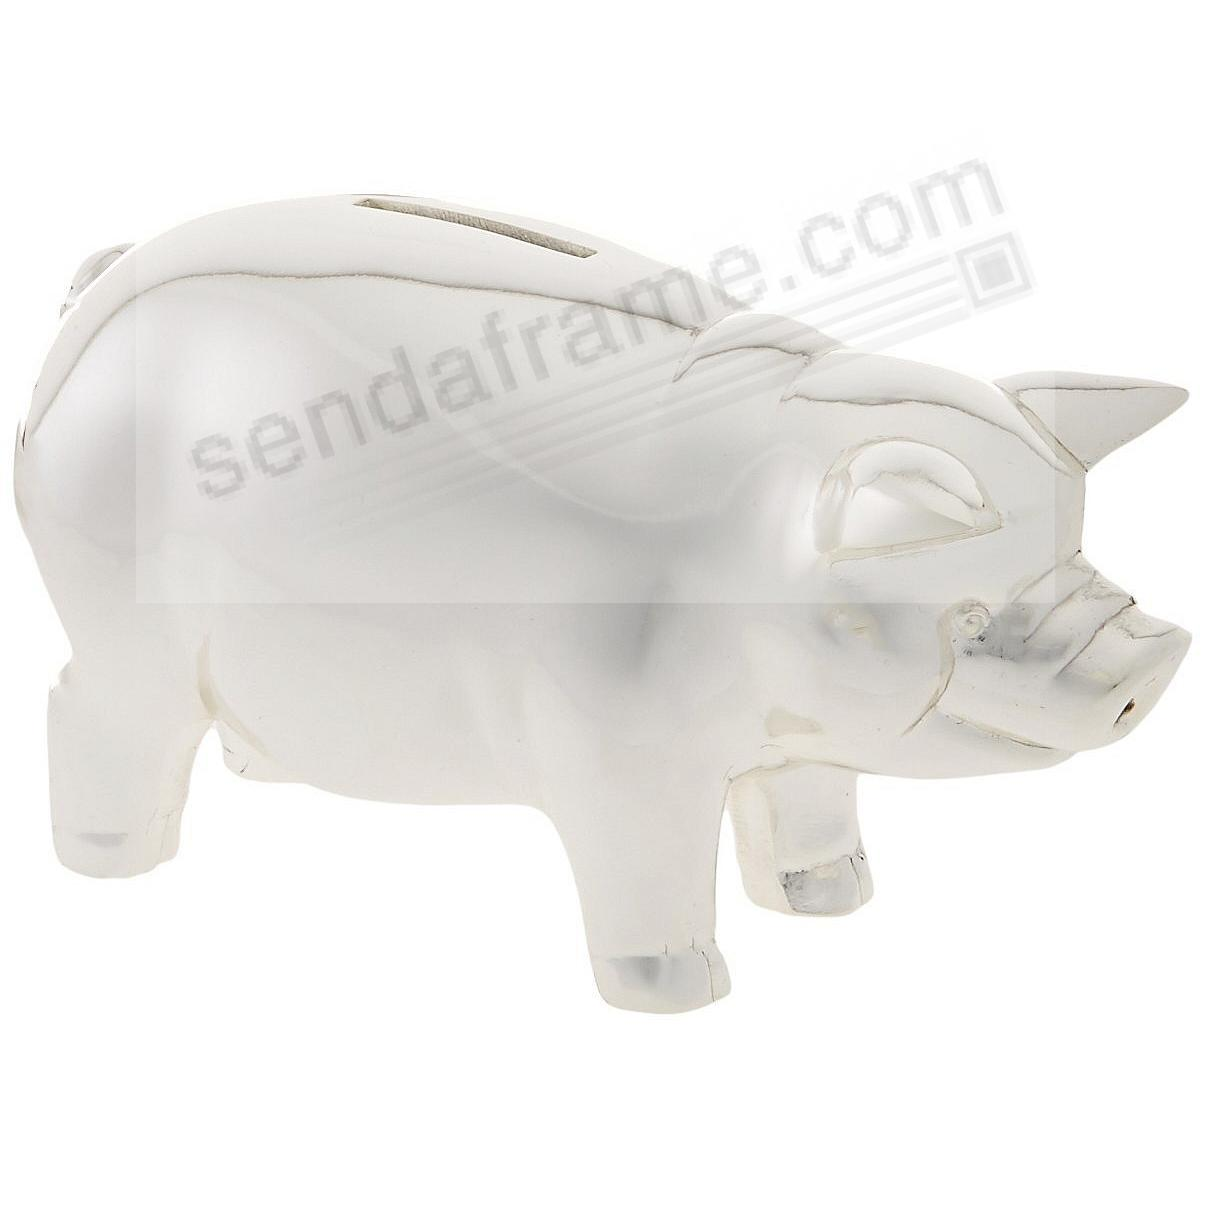 The CLASSIC PIGGY BANK by Reed and Barton®